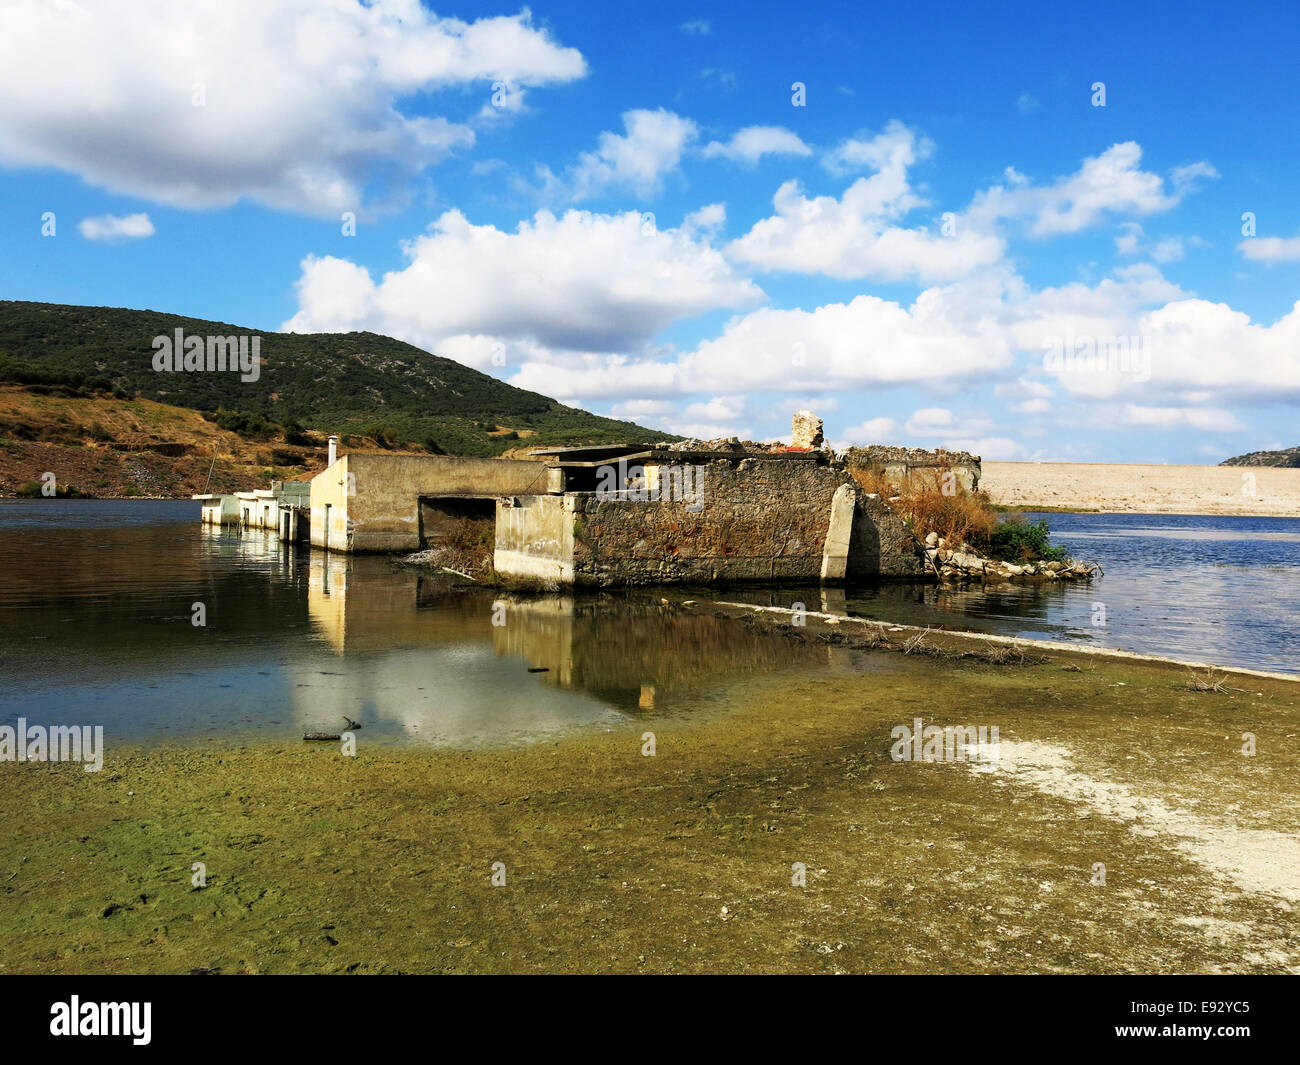 Aposelemi dam with newly formed reservoir flooding the houses of Sfentili village. - Stock Image